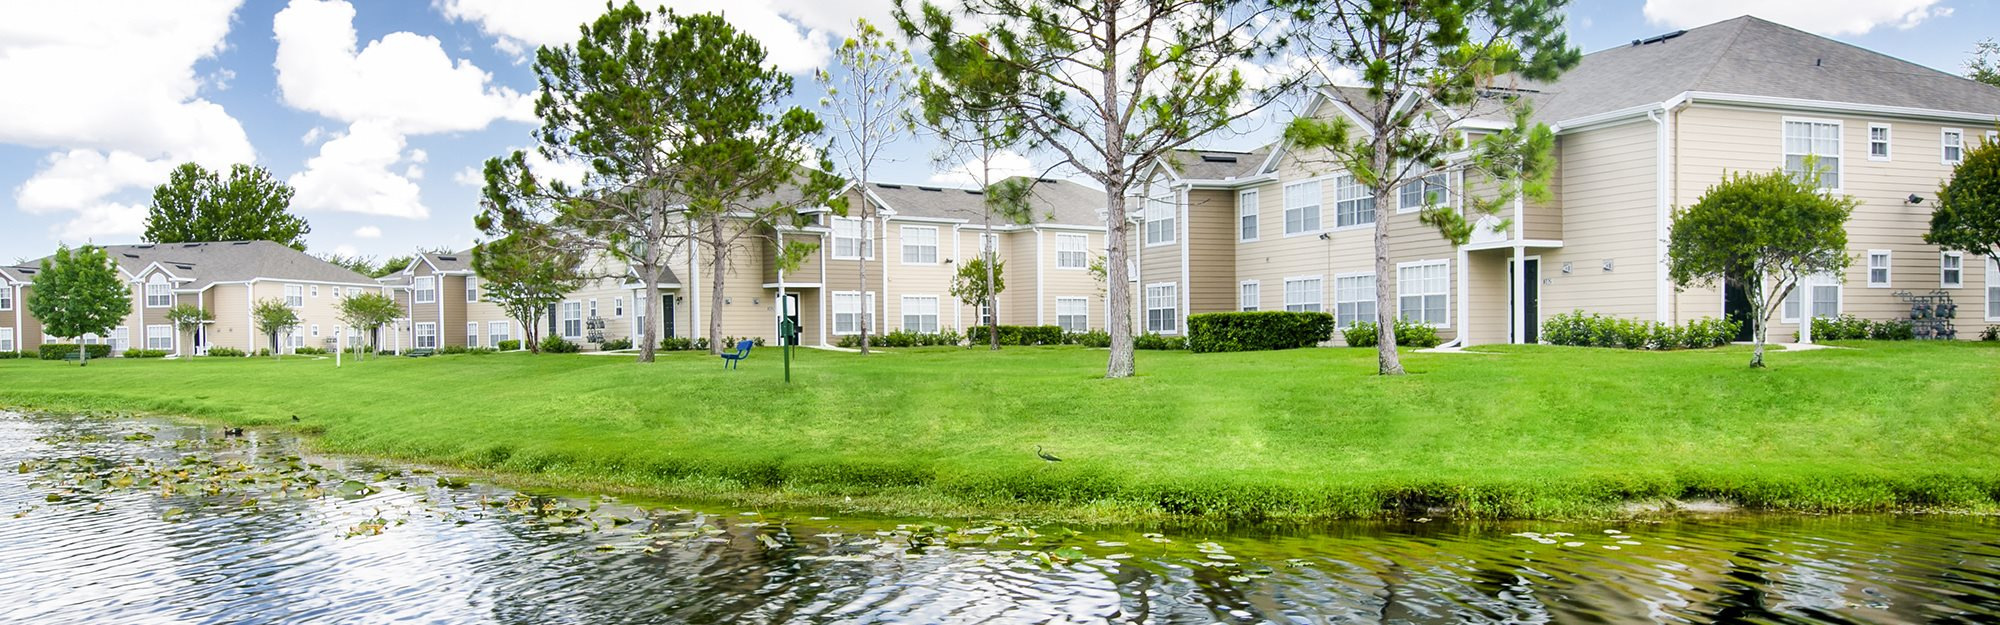 Brooke Commons Apartments for rent in Orlando, FL. Make this community your new home or visit other Concord Rents communities at ConcordRents.com. Lake view